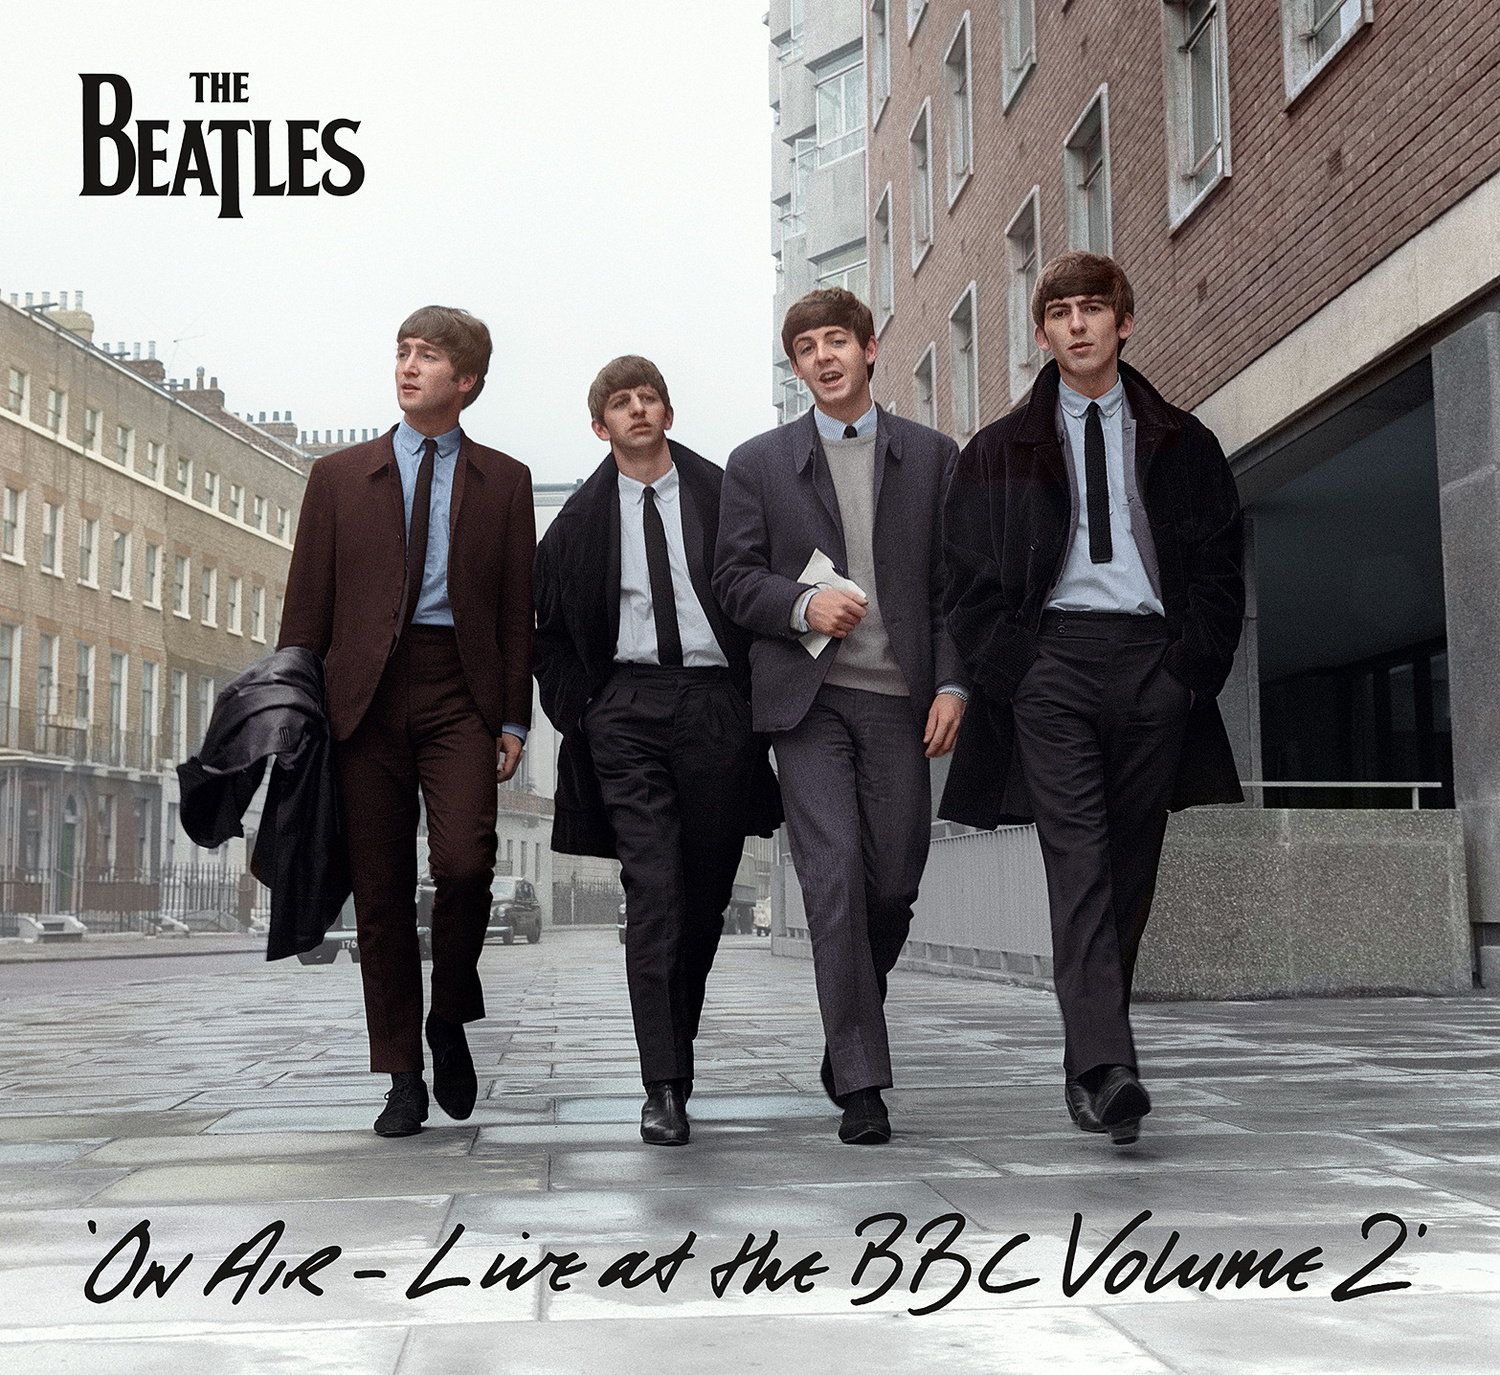 the Beatles- On Air - Live at the BBC Volume 2